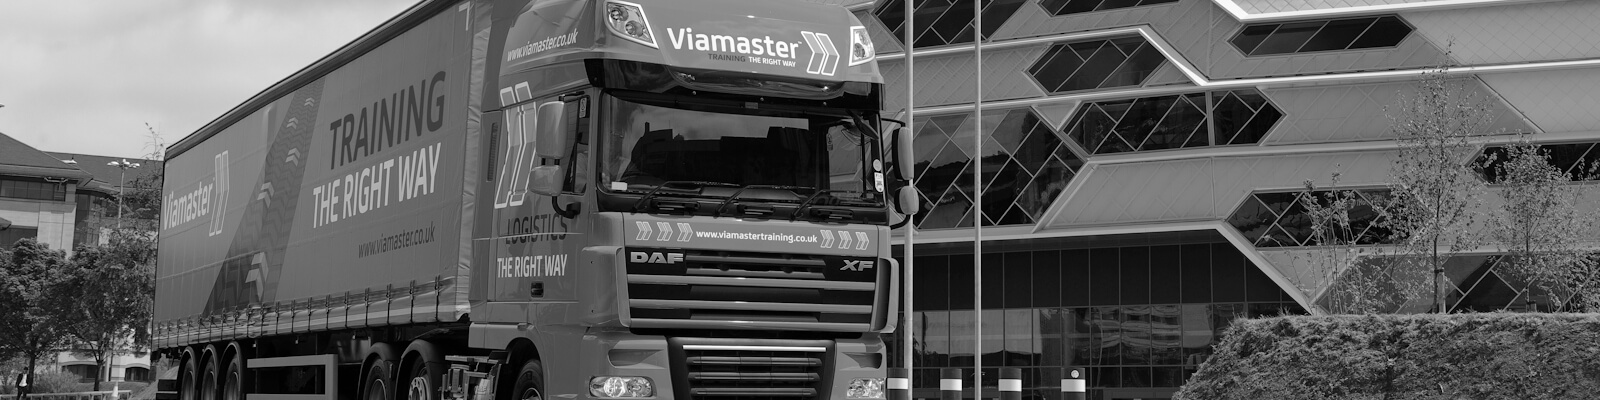 Viamaster Training lorry